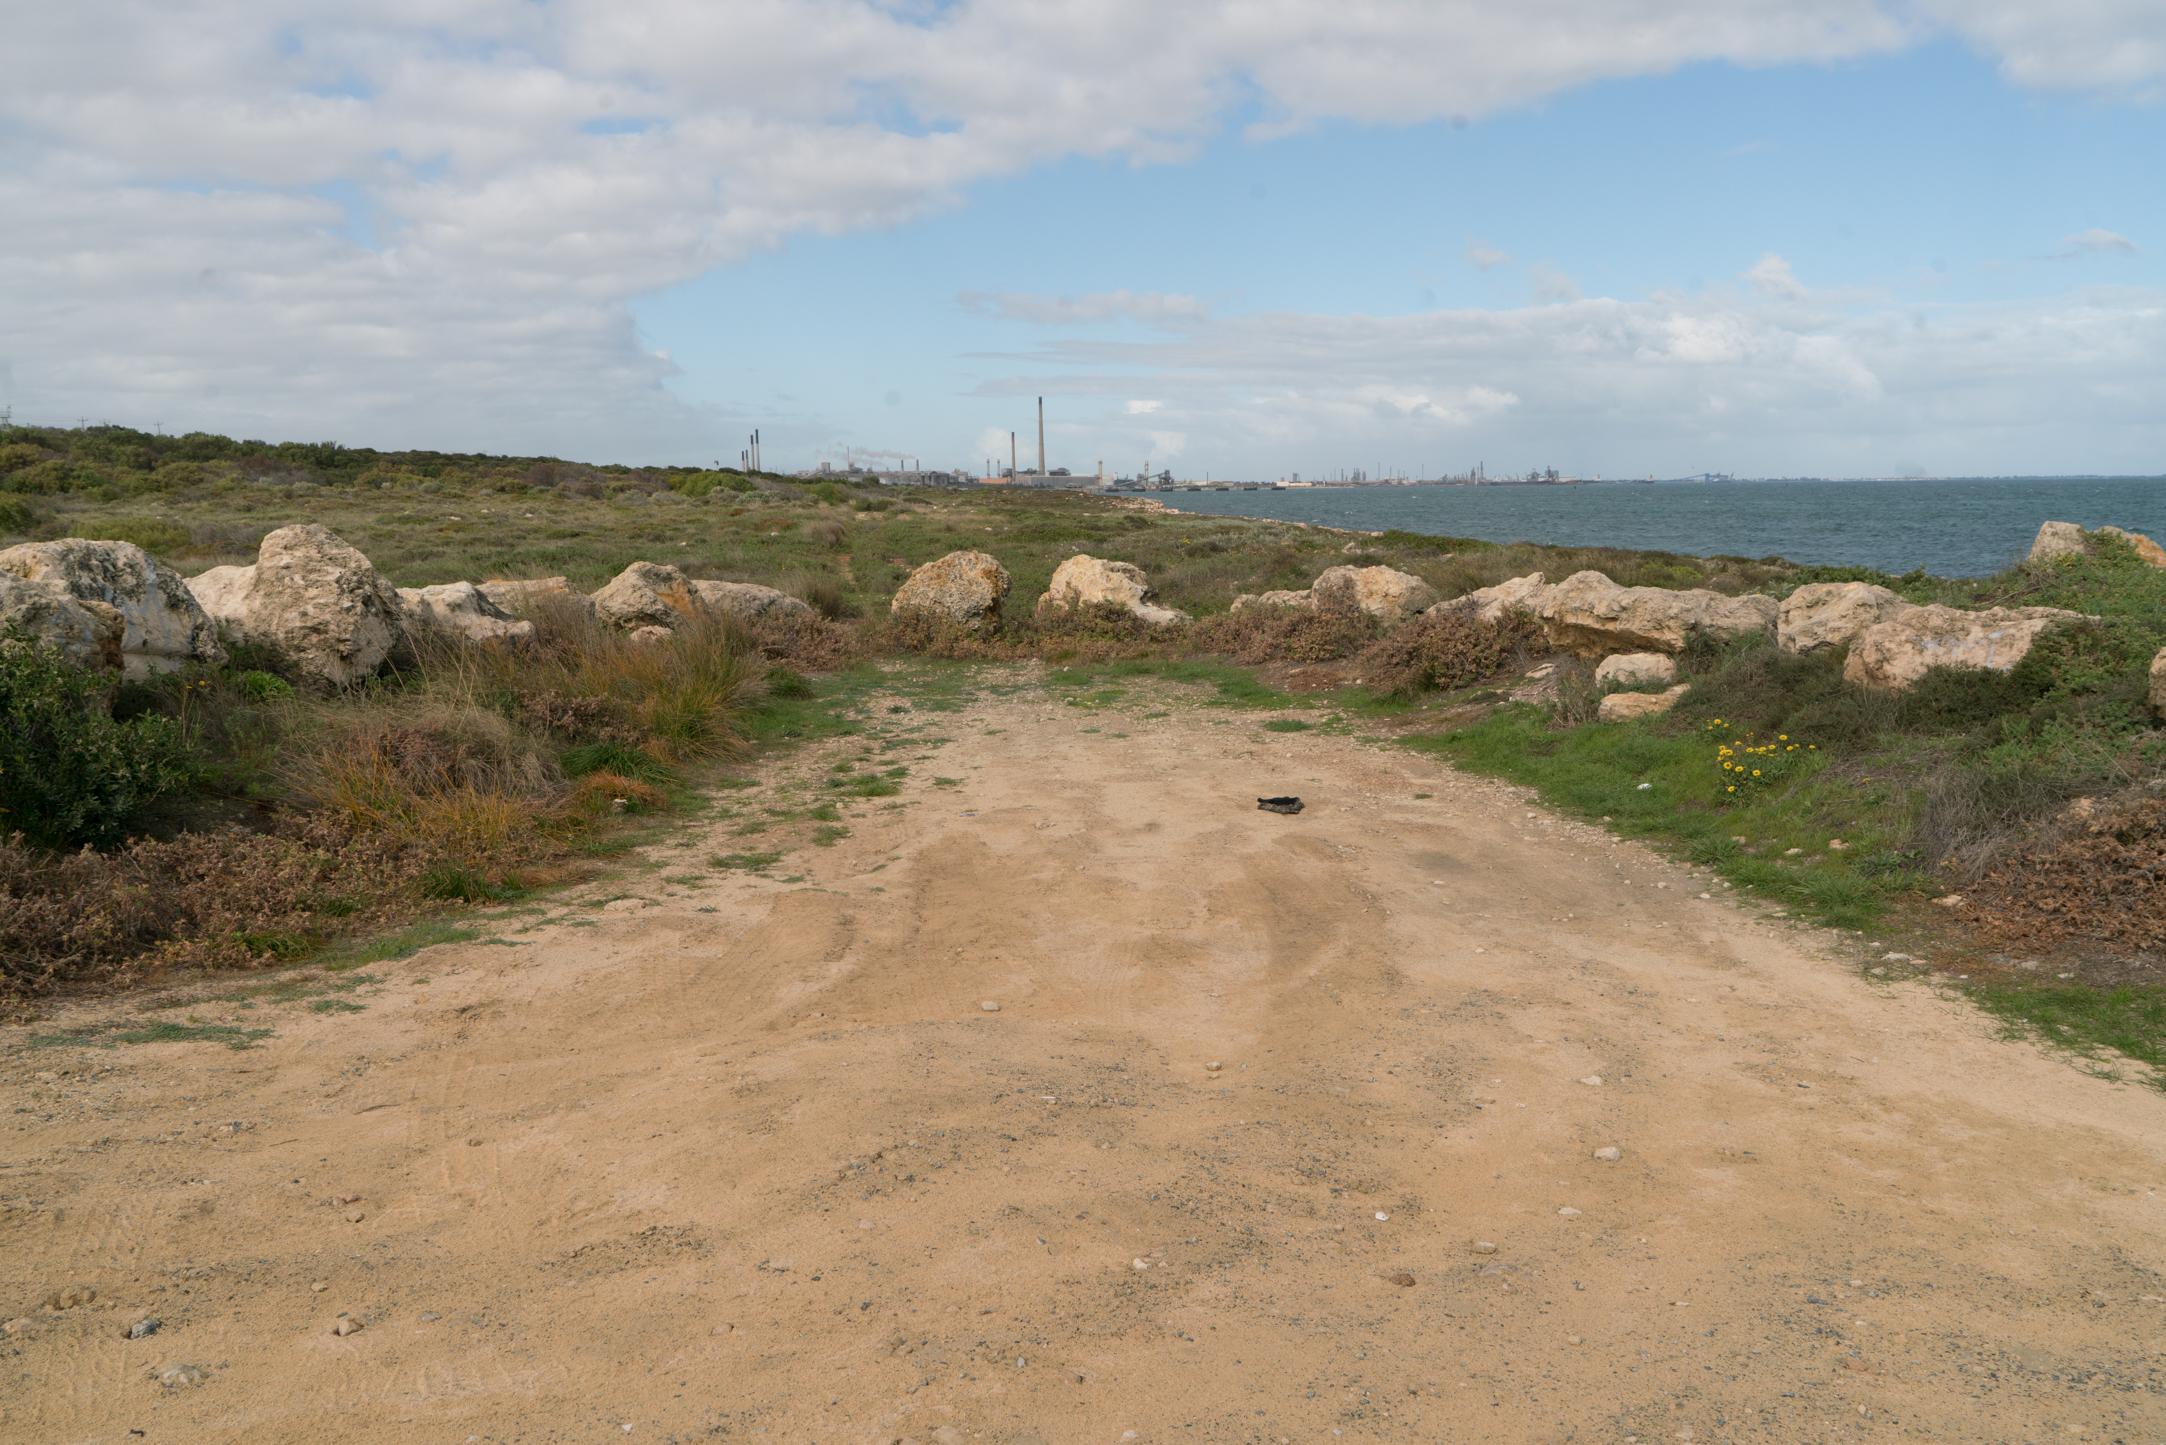 Plates 8: The track though Beeliar Regional Park heading south